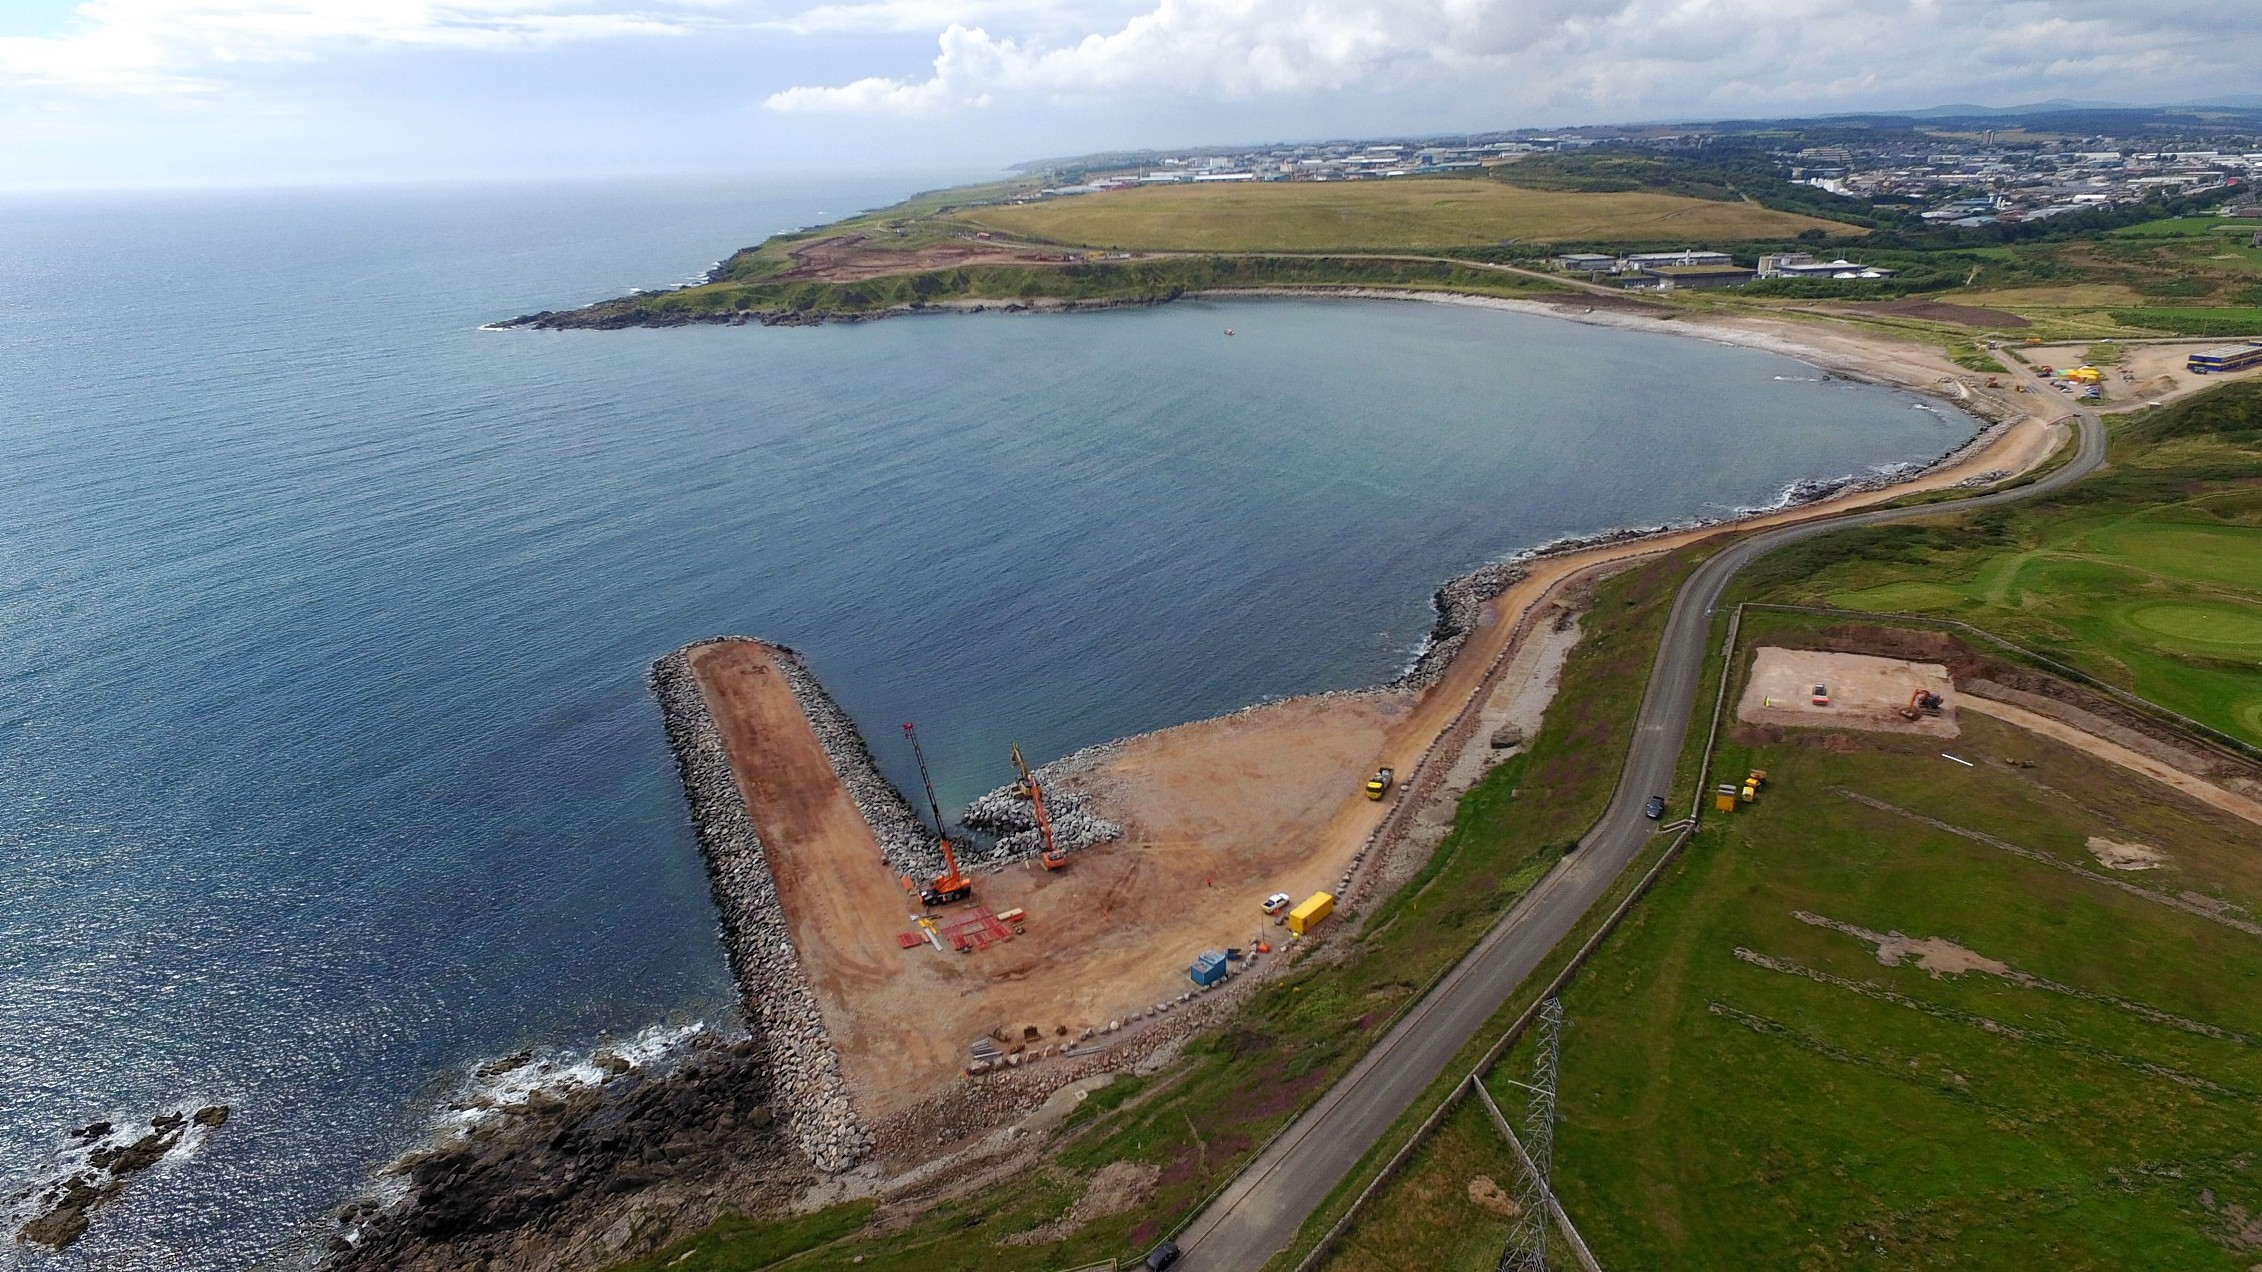 The Nigg harbour expansion starts.